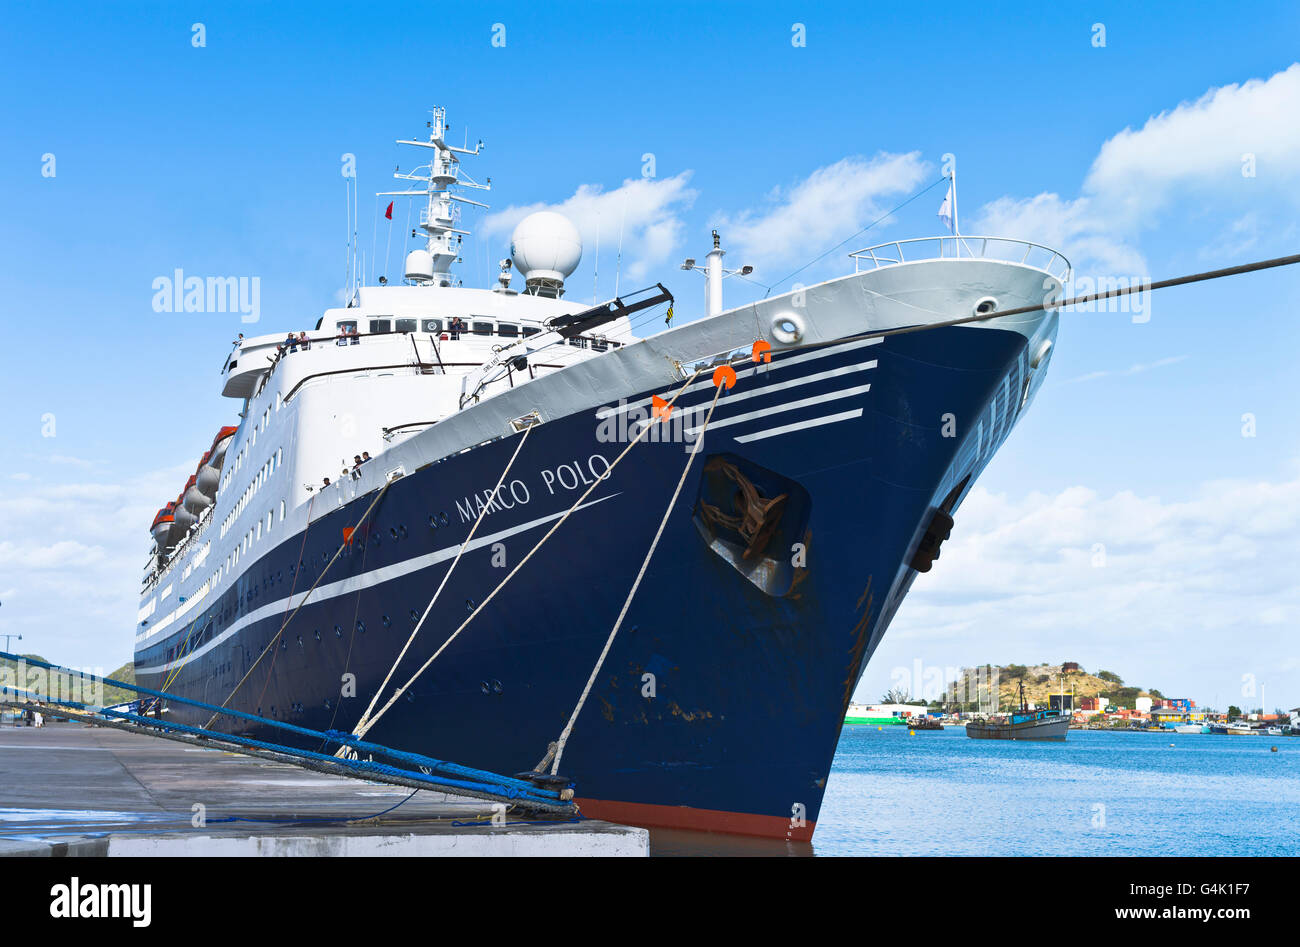 dh  CRUISE SHIPS CARIBBEAN CMV Marco Polo cruise ship bow berthed in St Johns antigua moored Stock Photo